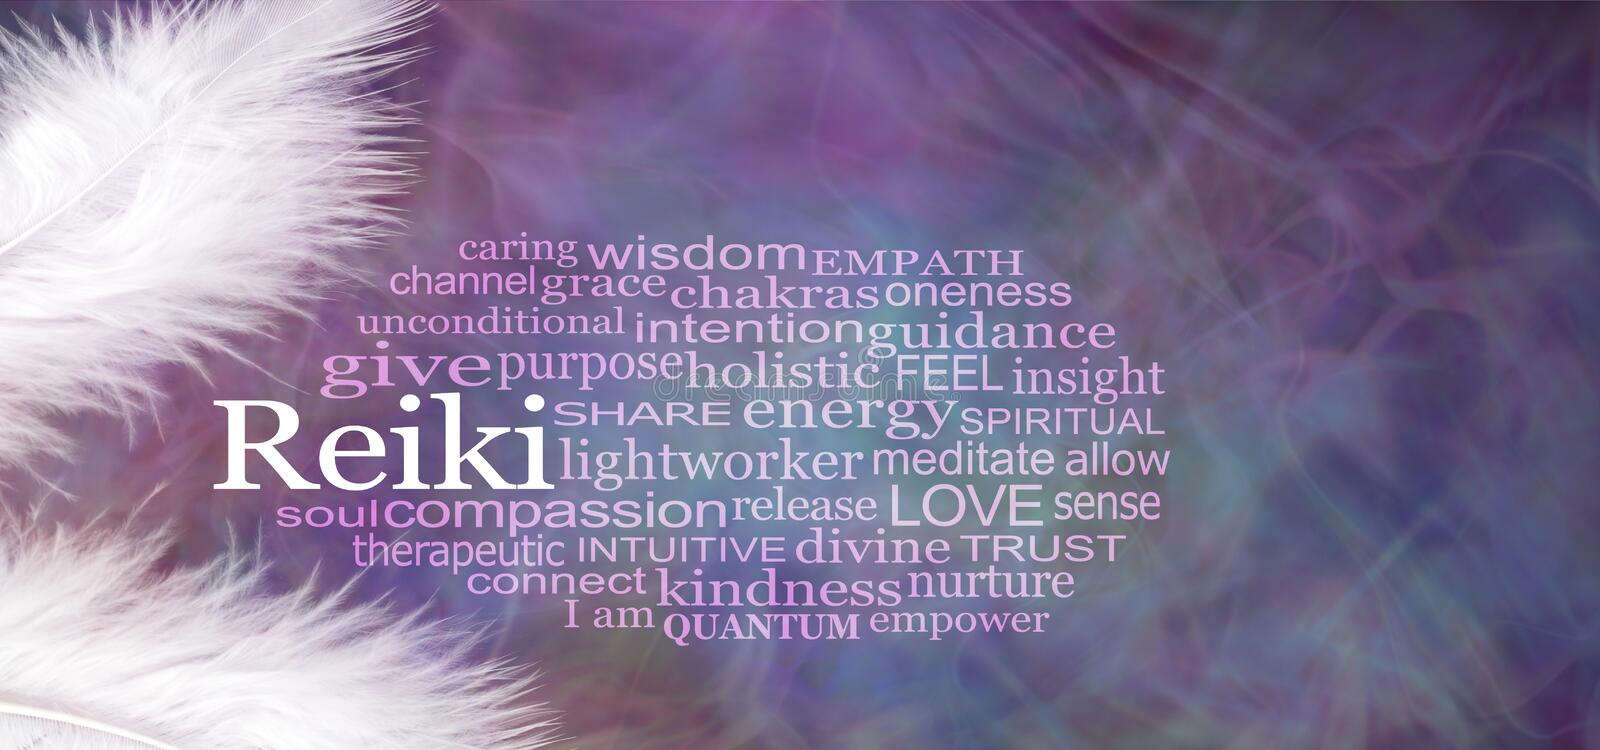 Angelic REIKI Word Cloud Rustic Banner. Two white feathers with a REIKI word cloud between against a wispy purple pattern background stock image